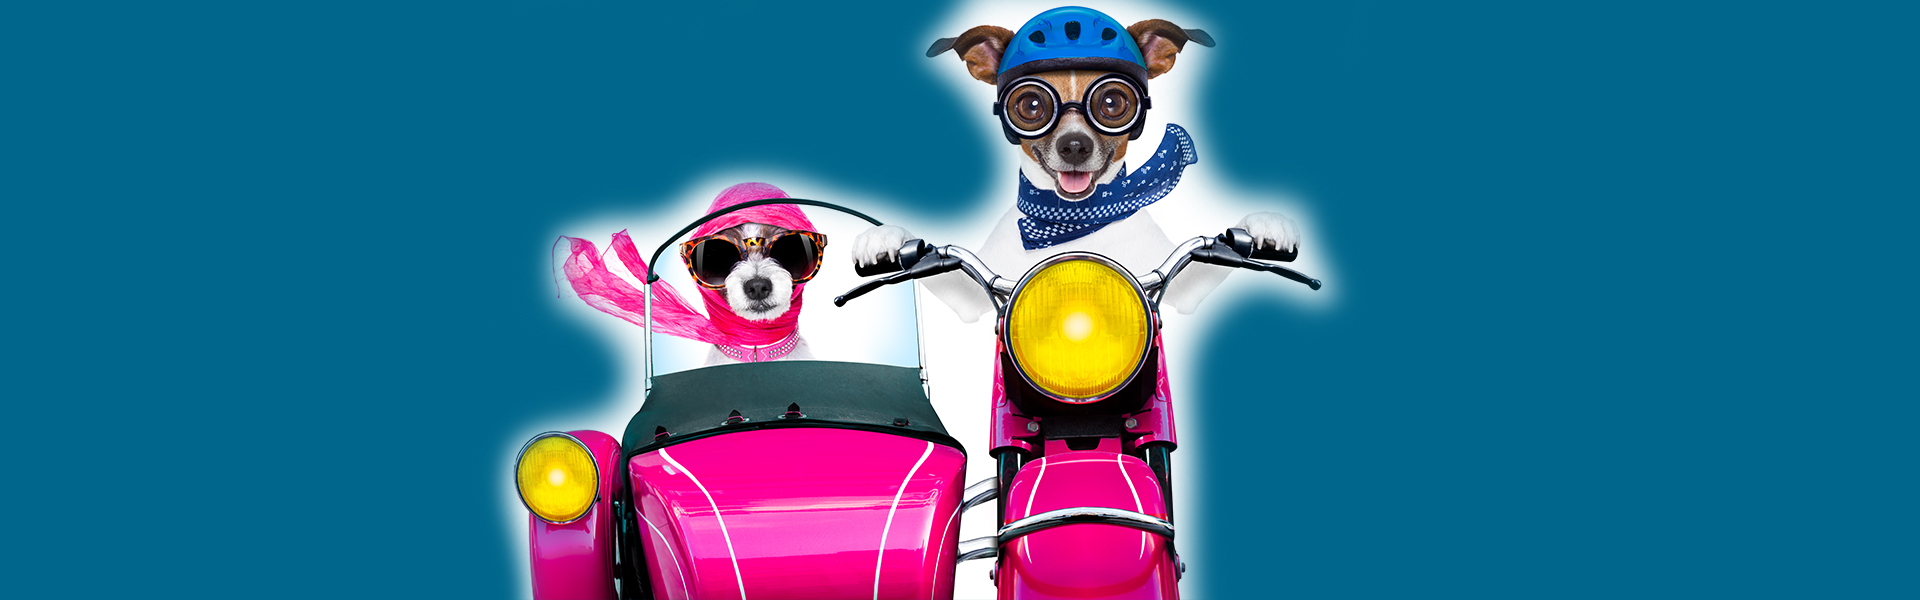 Dogs on motorcycles.jpg